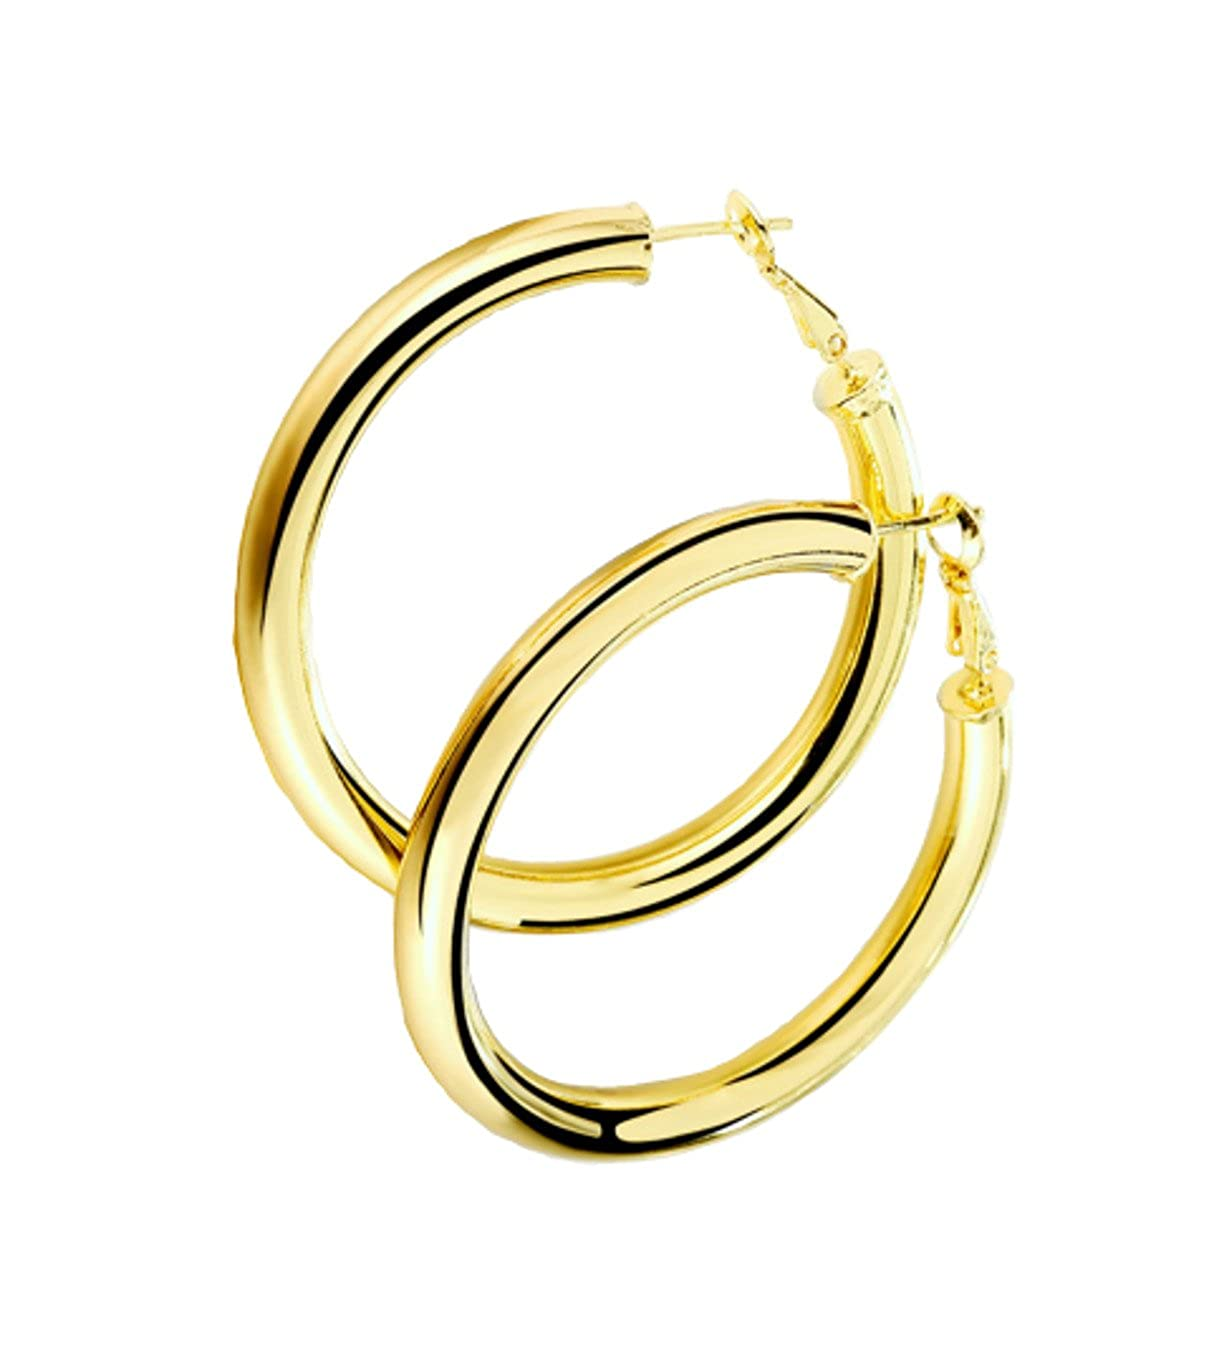 d39fc9112 Amazon.com: STAYJOY 18K Gold Polished Fashion High-Profile Hoop Earrings  with Omega Backs (Large): Jewelry